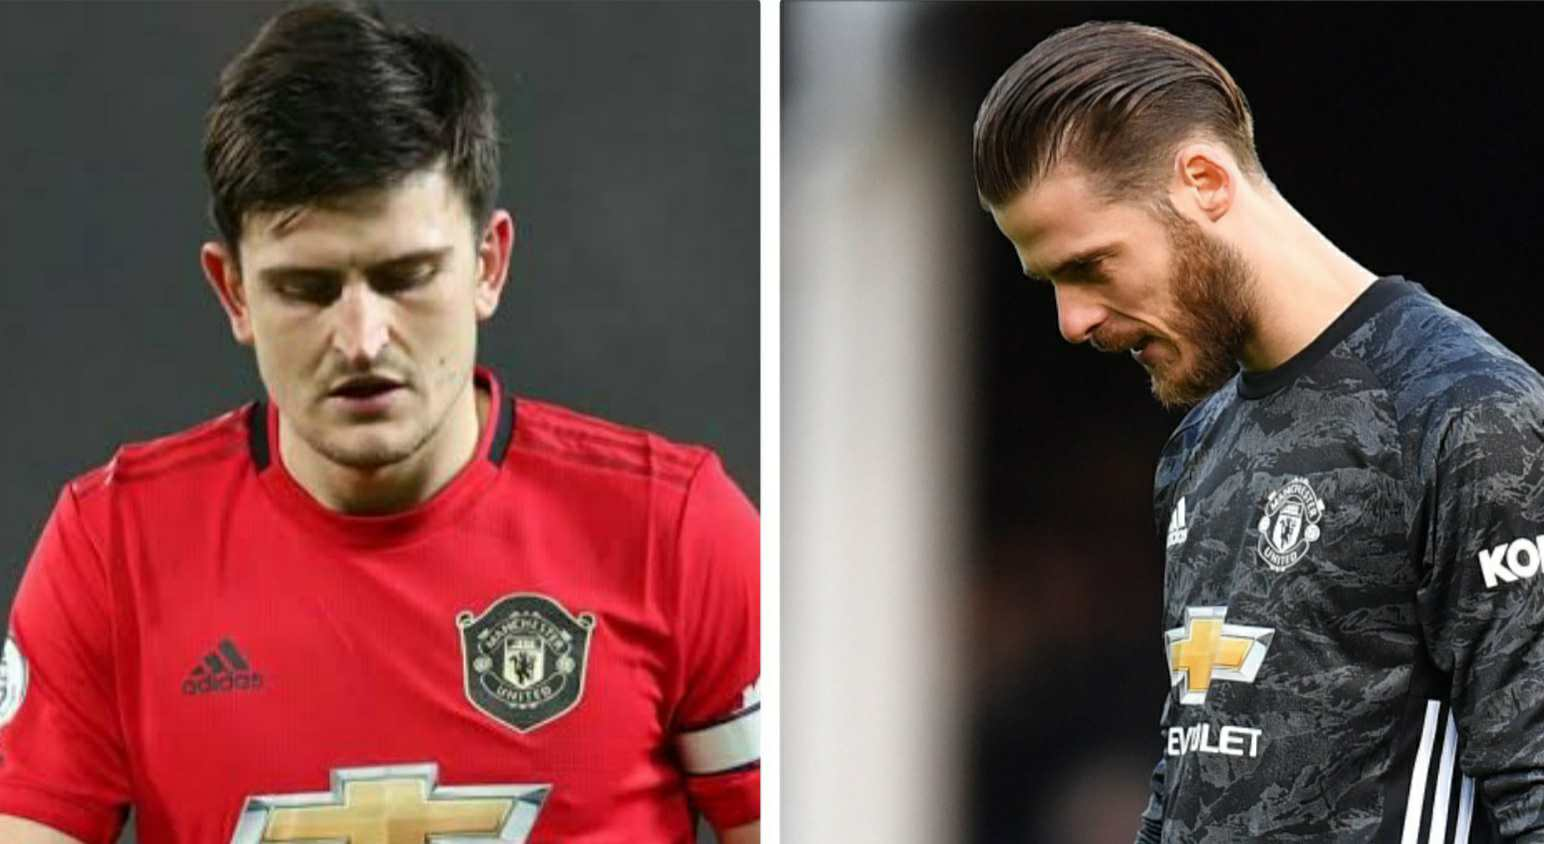 Furious Keane hits out at Maguire and 'overrated' De Gea